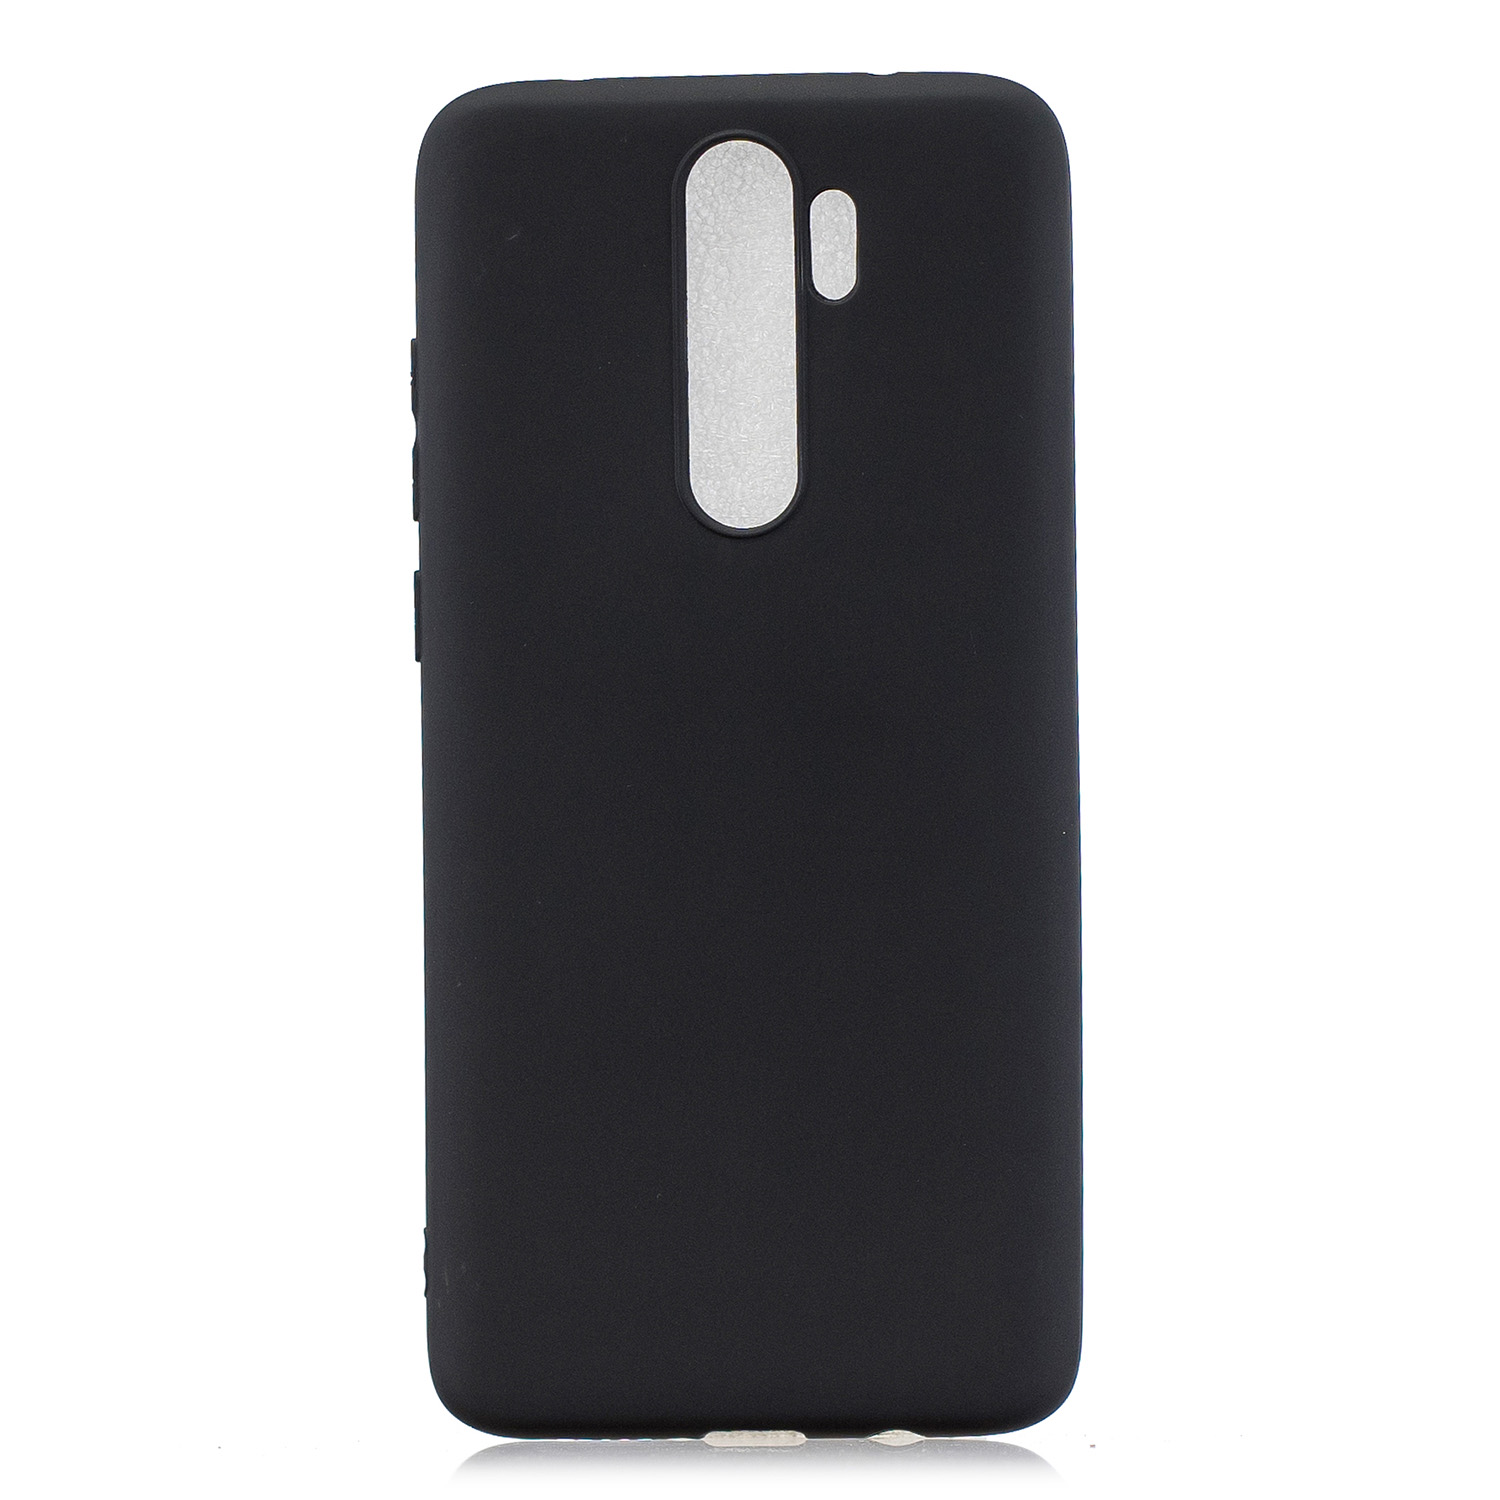 For Redmi NOTE 8 NOTE 8 Pro Soft Candy Color Frosted Surface Shockproof TPU Back Cover Mobile Phone Case black